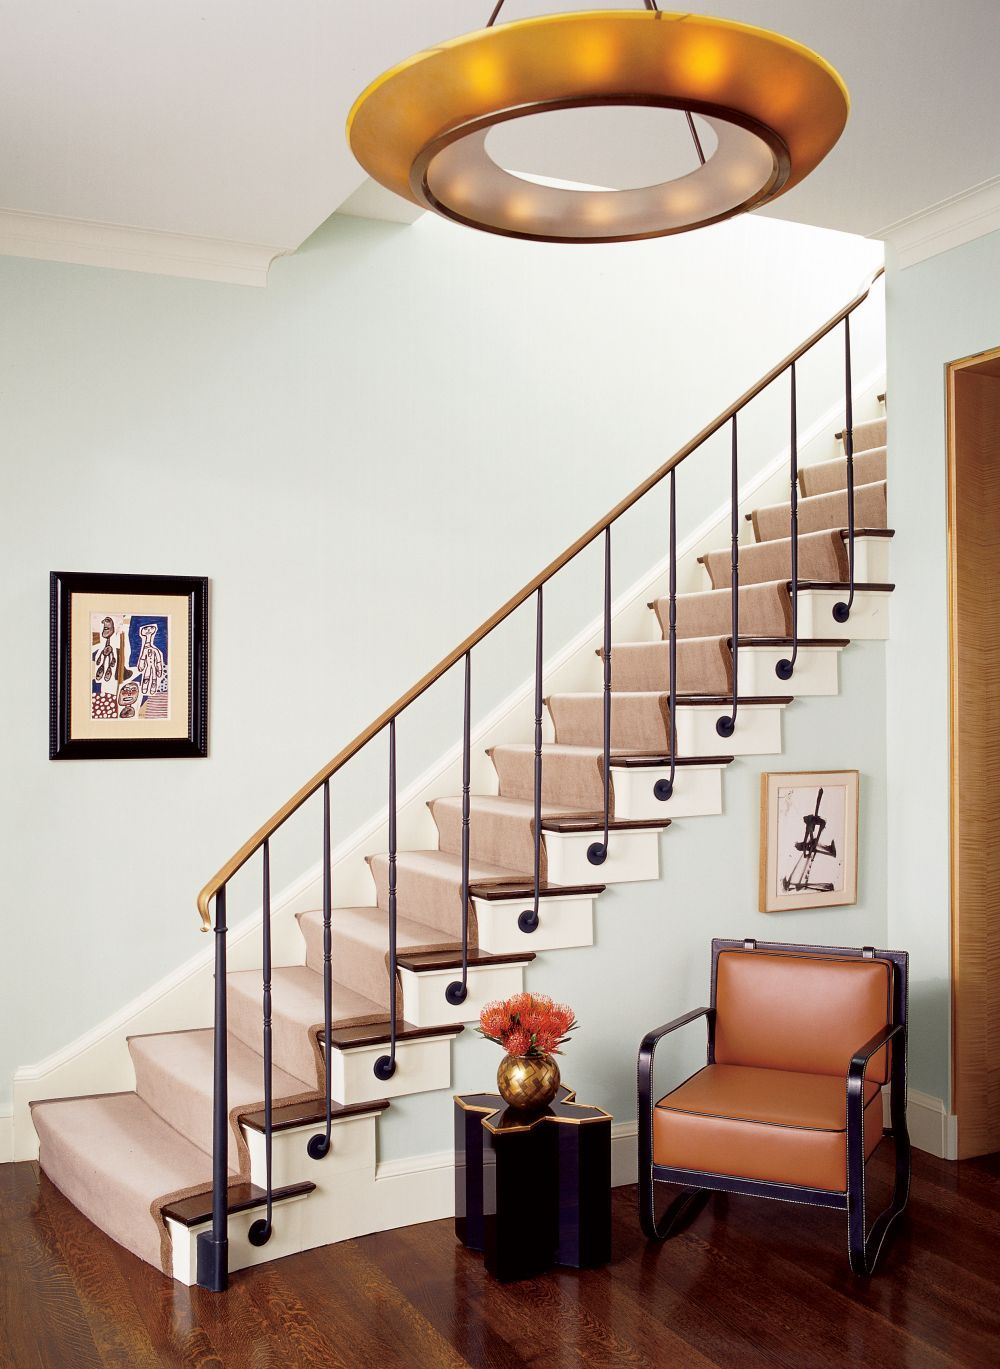 Best Modern Entrance Hall By Thom Filicia And Alan Wanzenberg 400 x 300